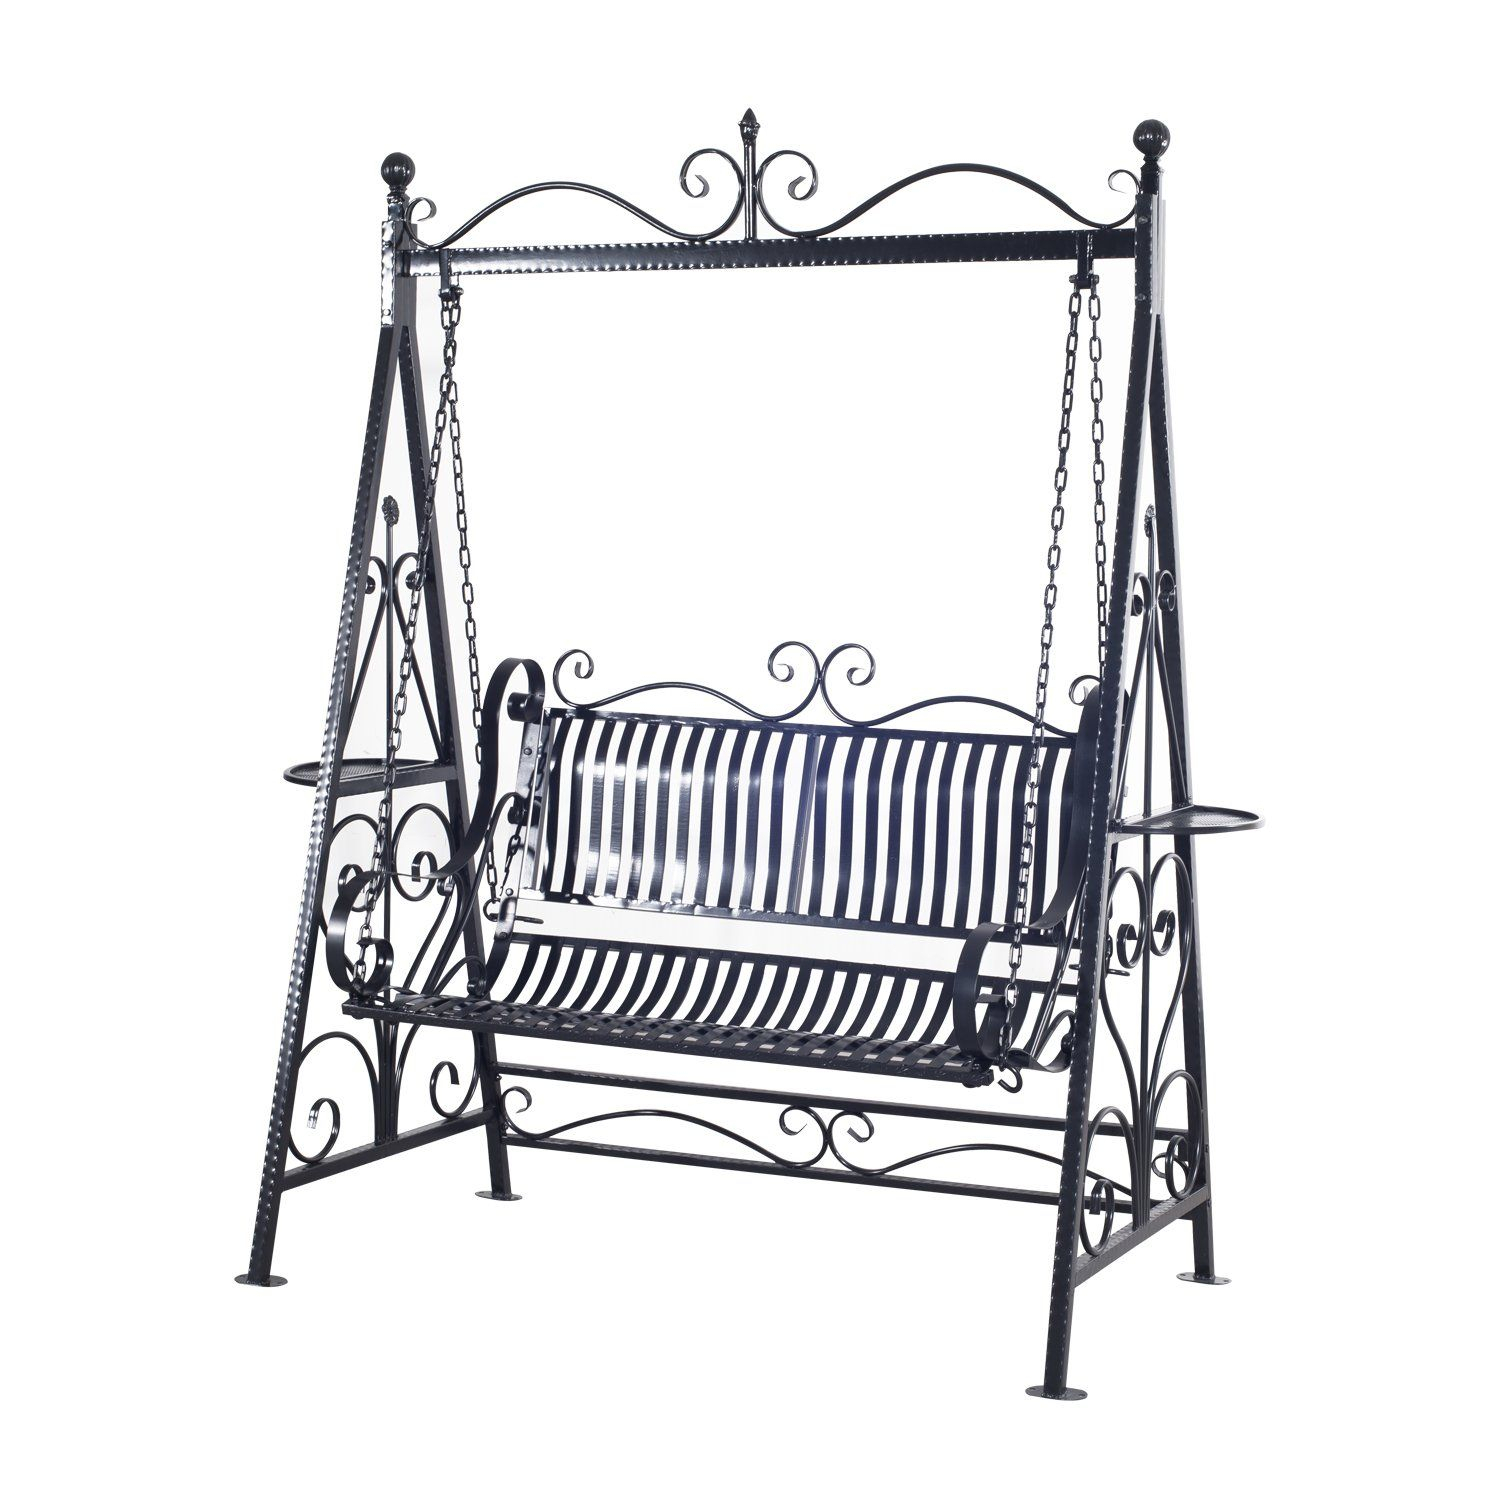 Outsunny Garden Metal Swing Chair Outdoor Patio Hammock Throughout 2 Person Hammered Bronze Iron Outdoor Swings (View 5 of 25)